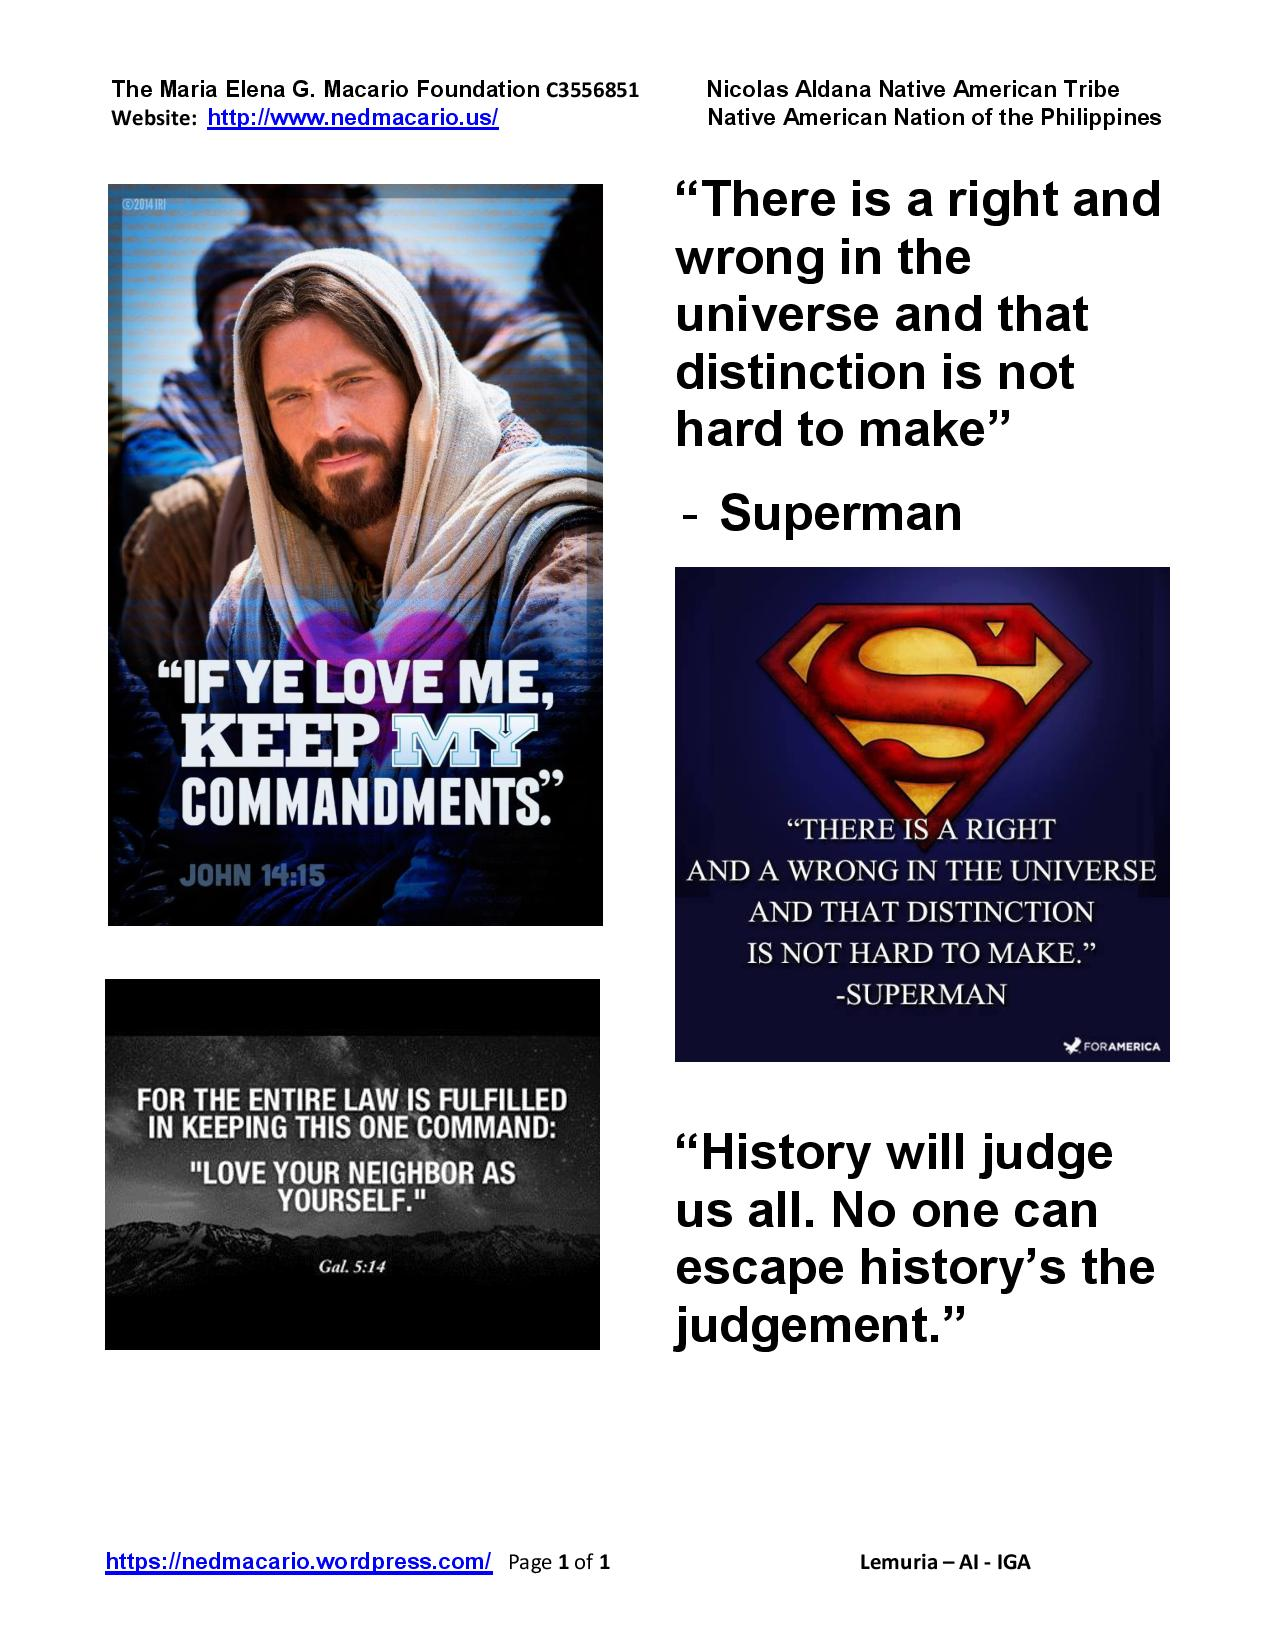 Gal. 5-14; Jesus Christ - If you love me keep my commandments; Superman on right & wrong.